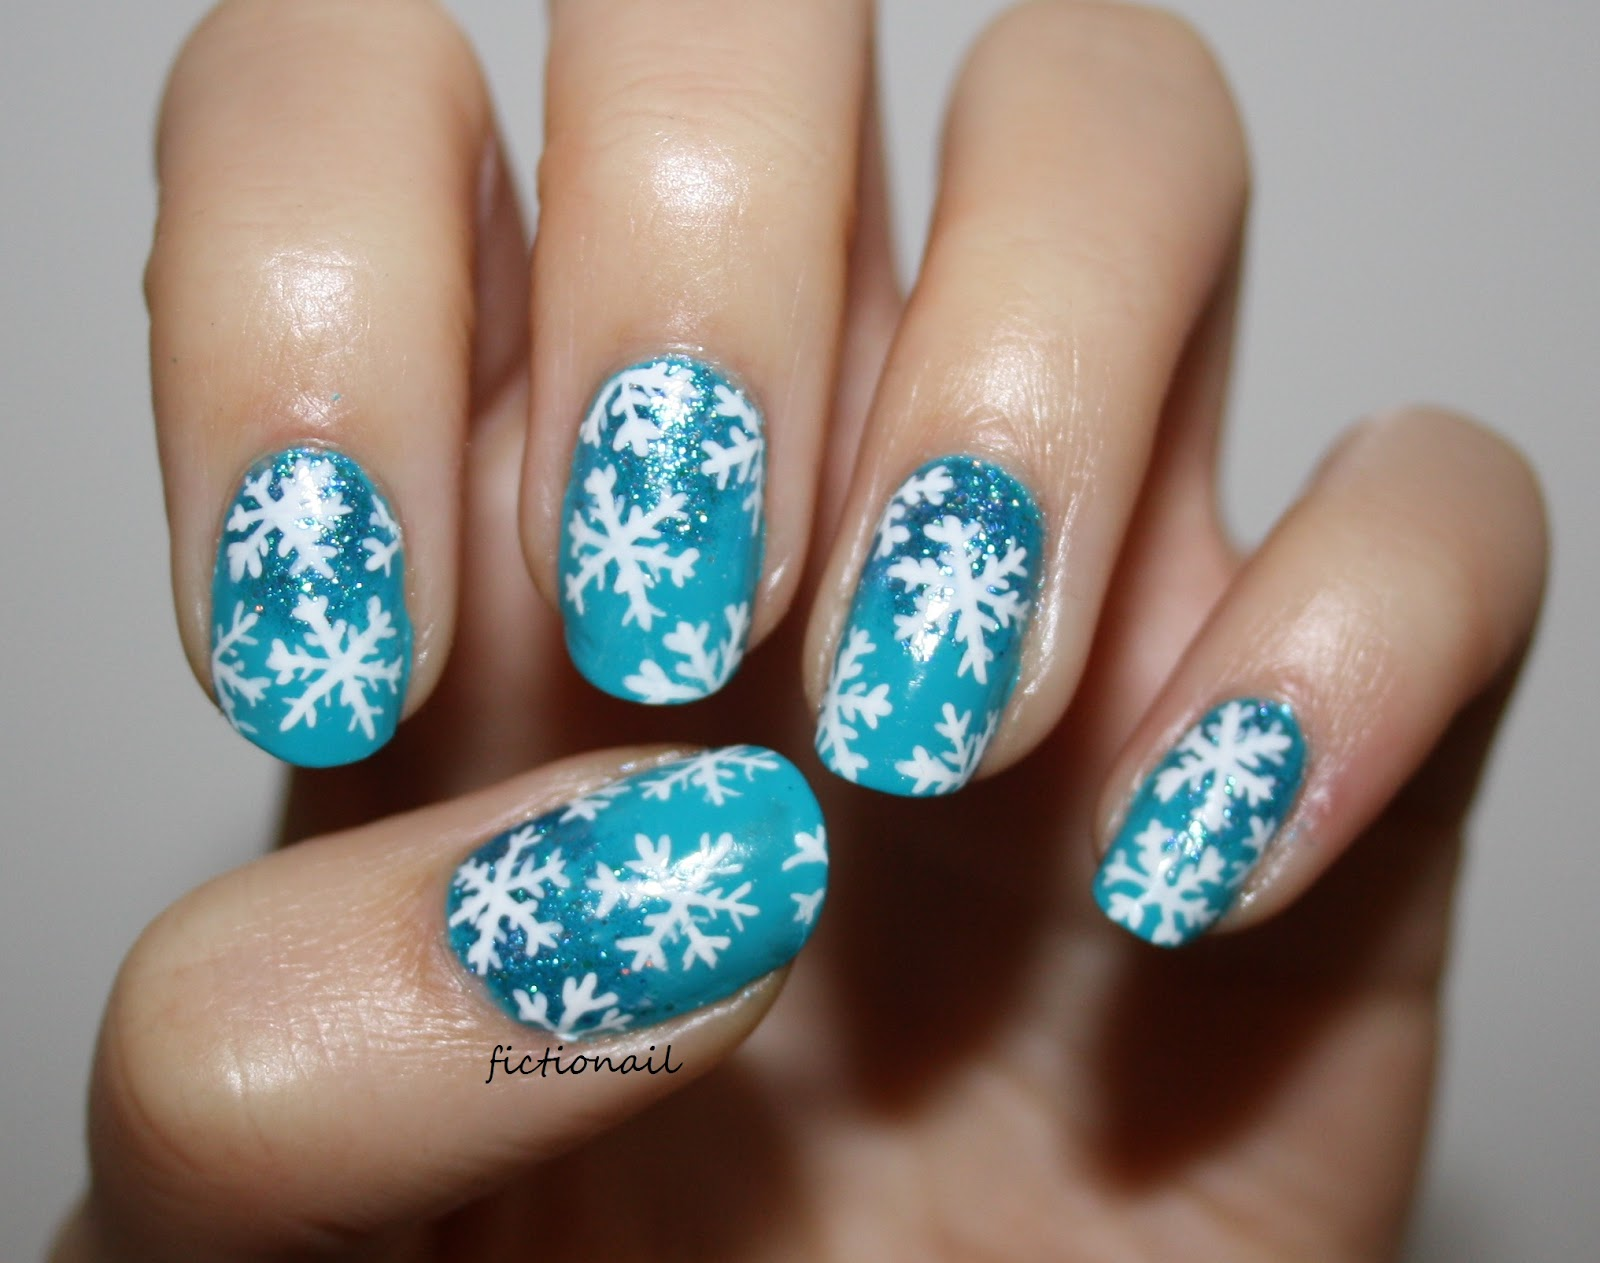 How To Snowflake Nails - Nail Ftempo